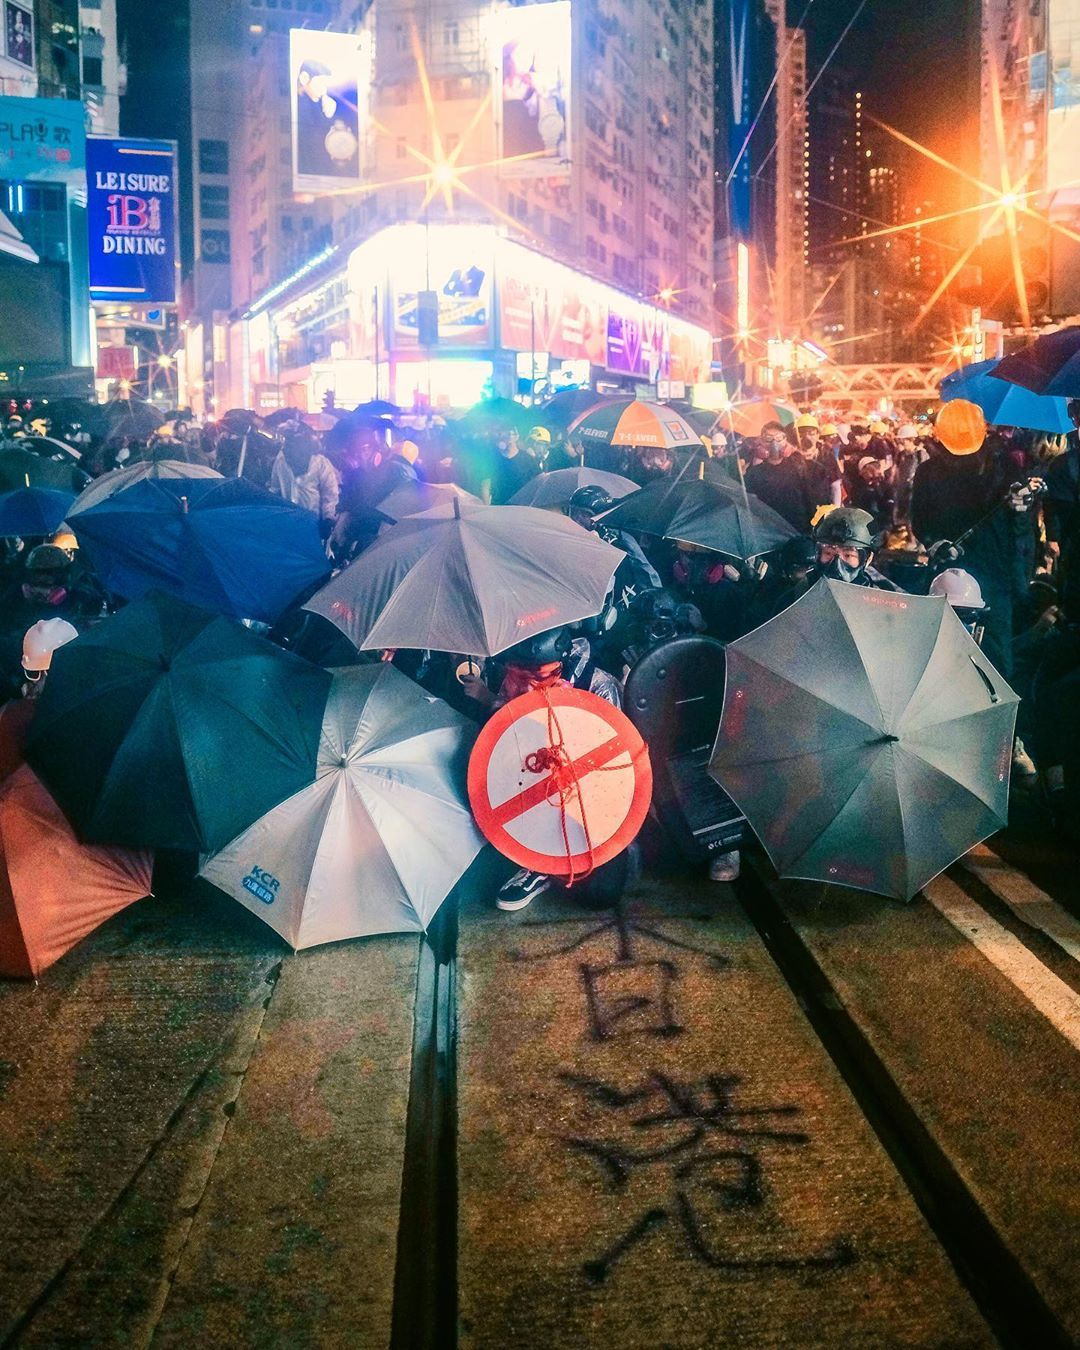 Hong Kong On Fire Local Photographer Captured Stunning Images Of The Days In Fight For Civil Rights In 2021 Hong Kong Protest Art Local Photographers